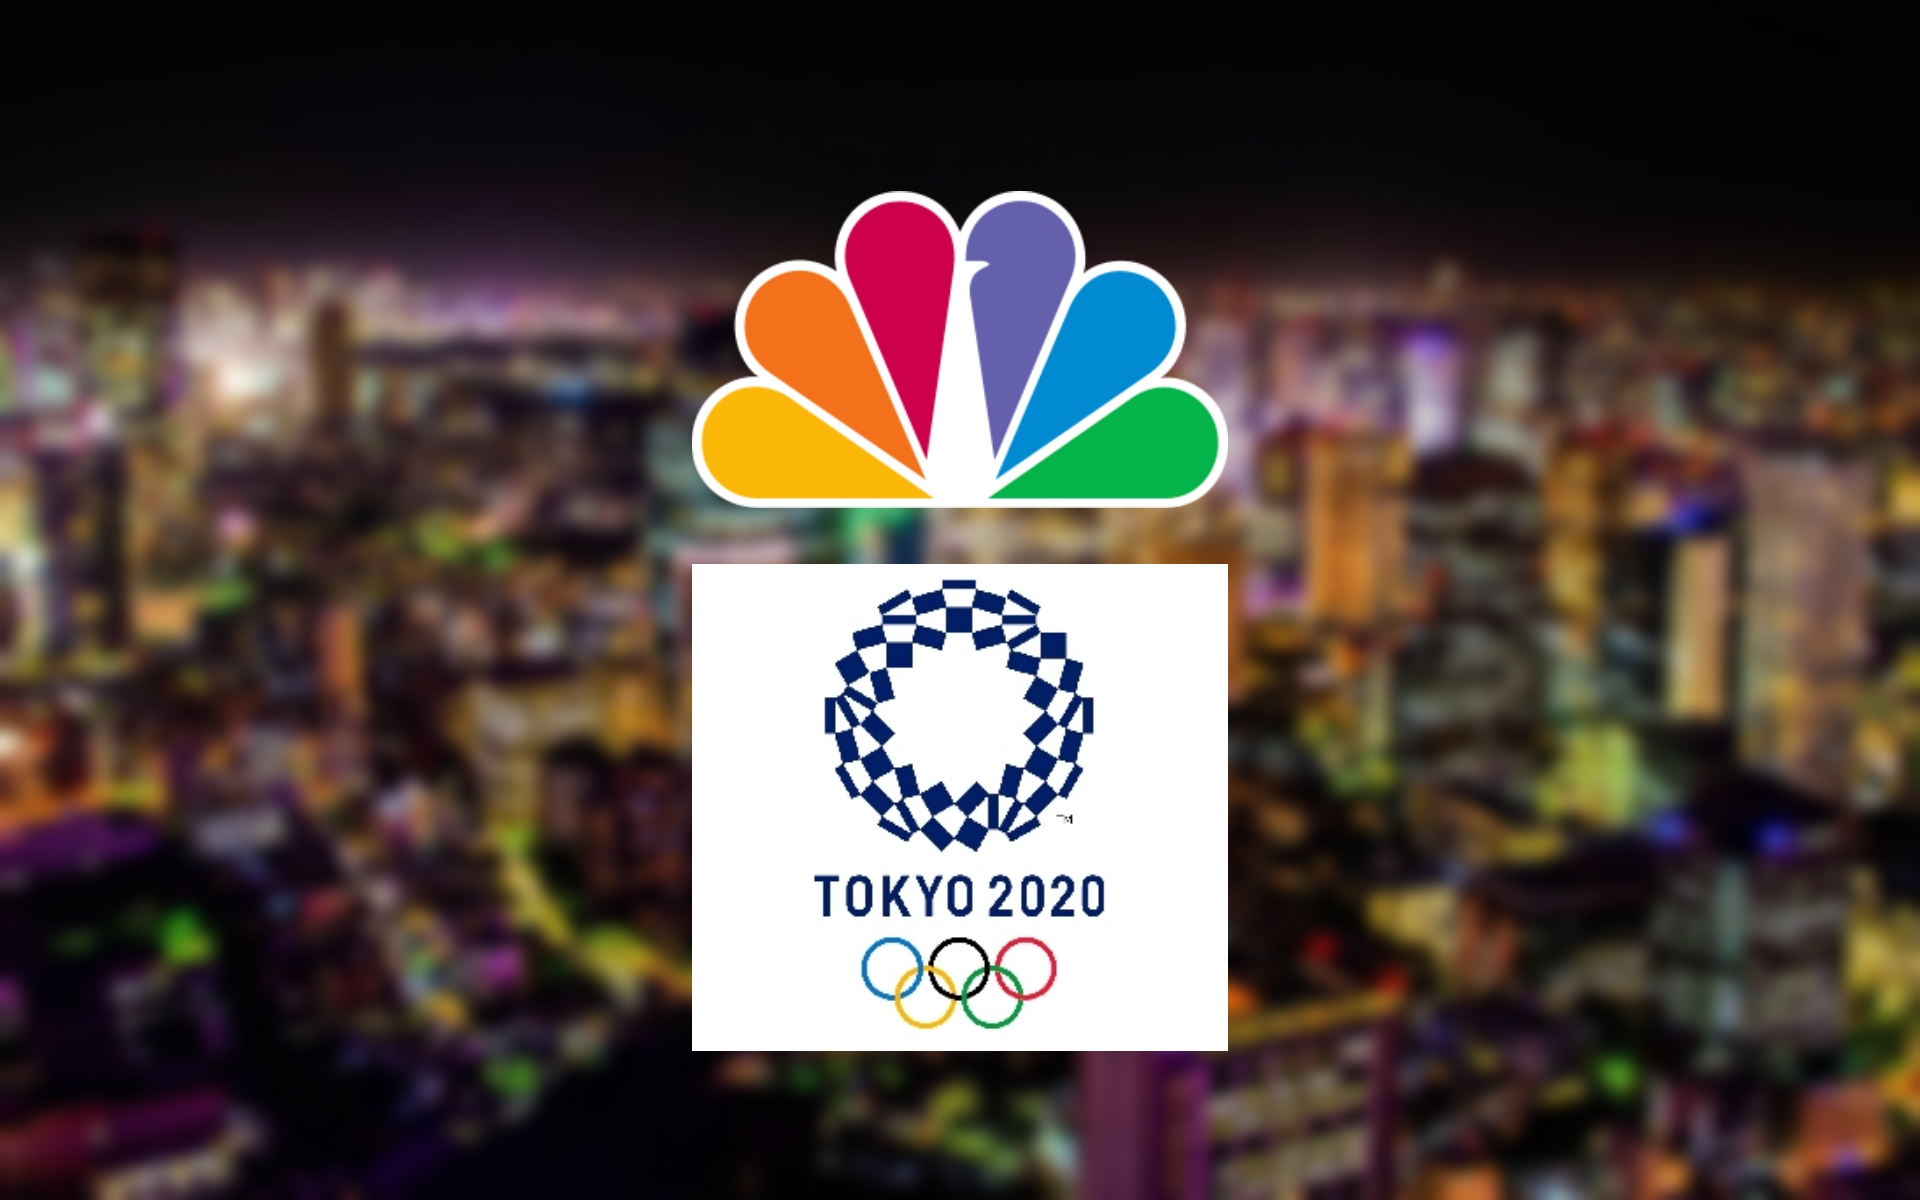 NBC witnessed lowest audience for Tokyo 2020 since 1988 Olympics